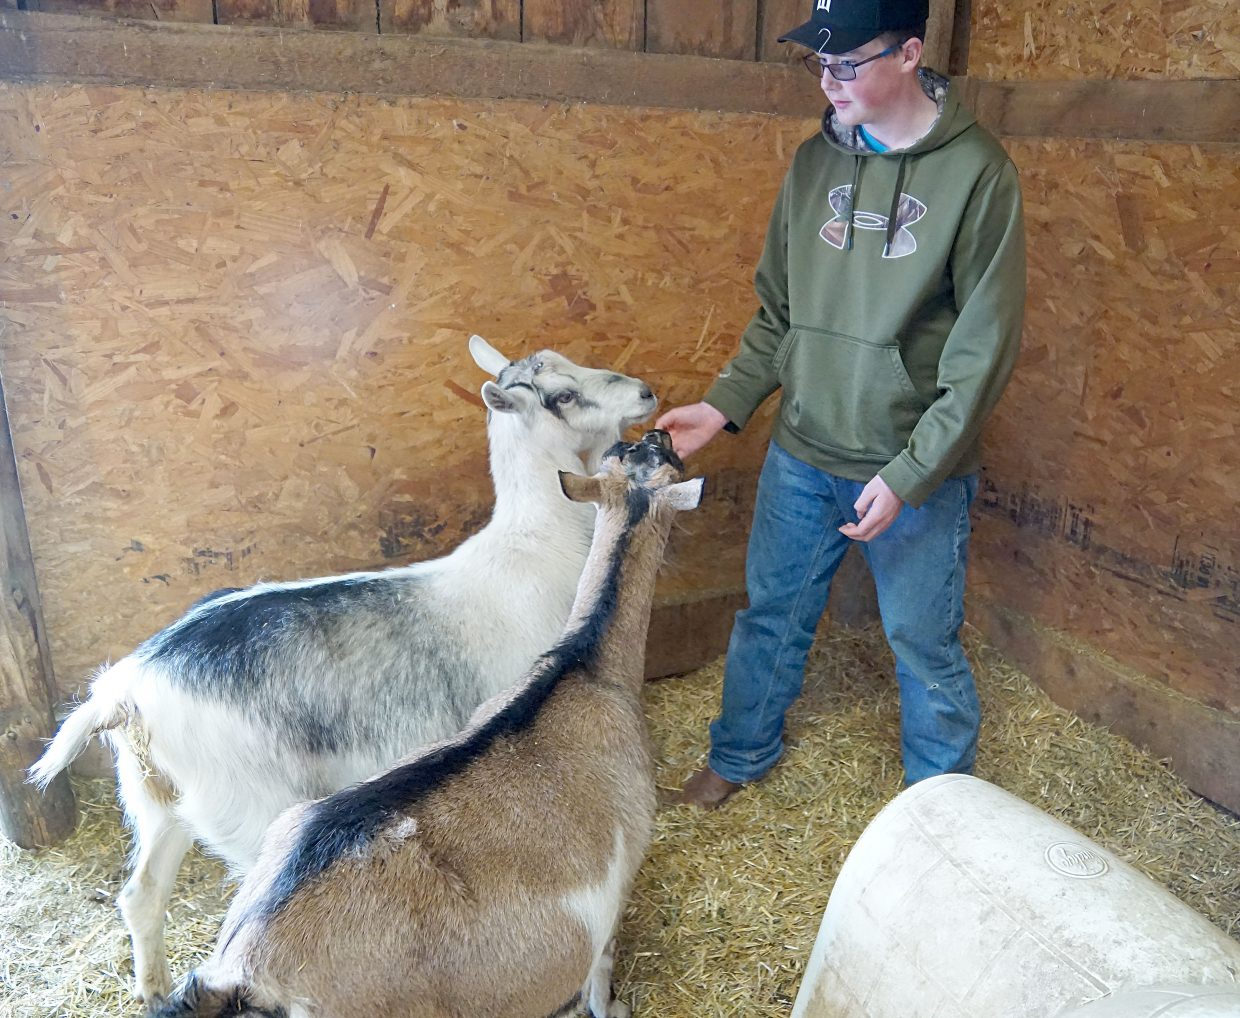 Joey Winters has won awards in 4-H for his ability to handle animals and intends to show some of the family goats during this year's 100 annual Moffat County Fair.